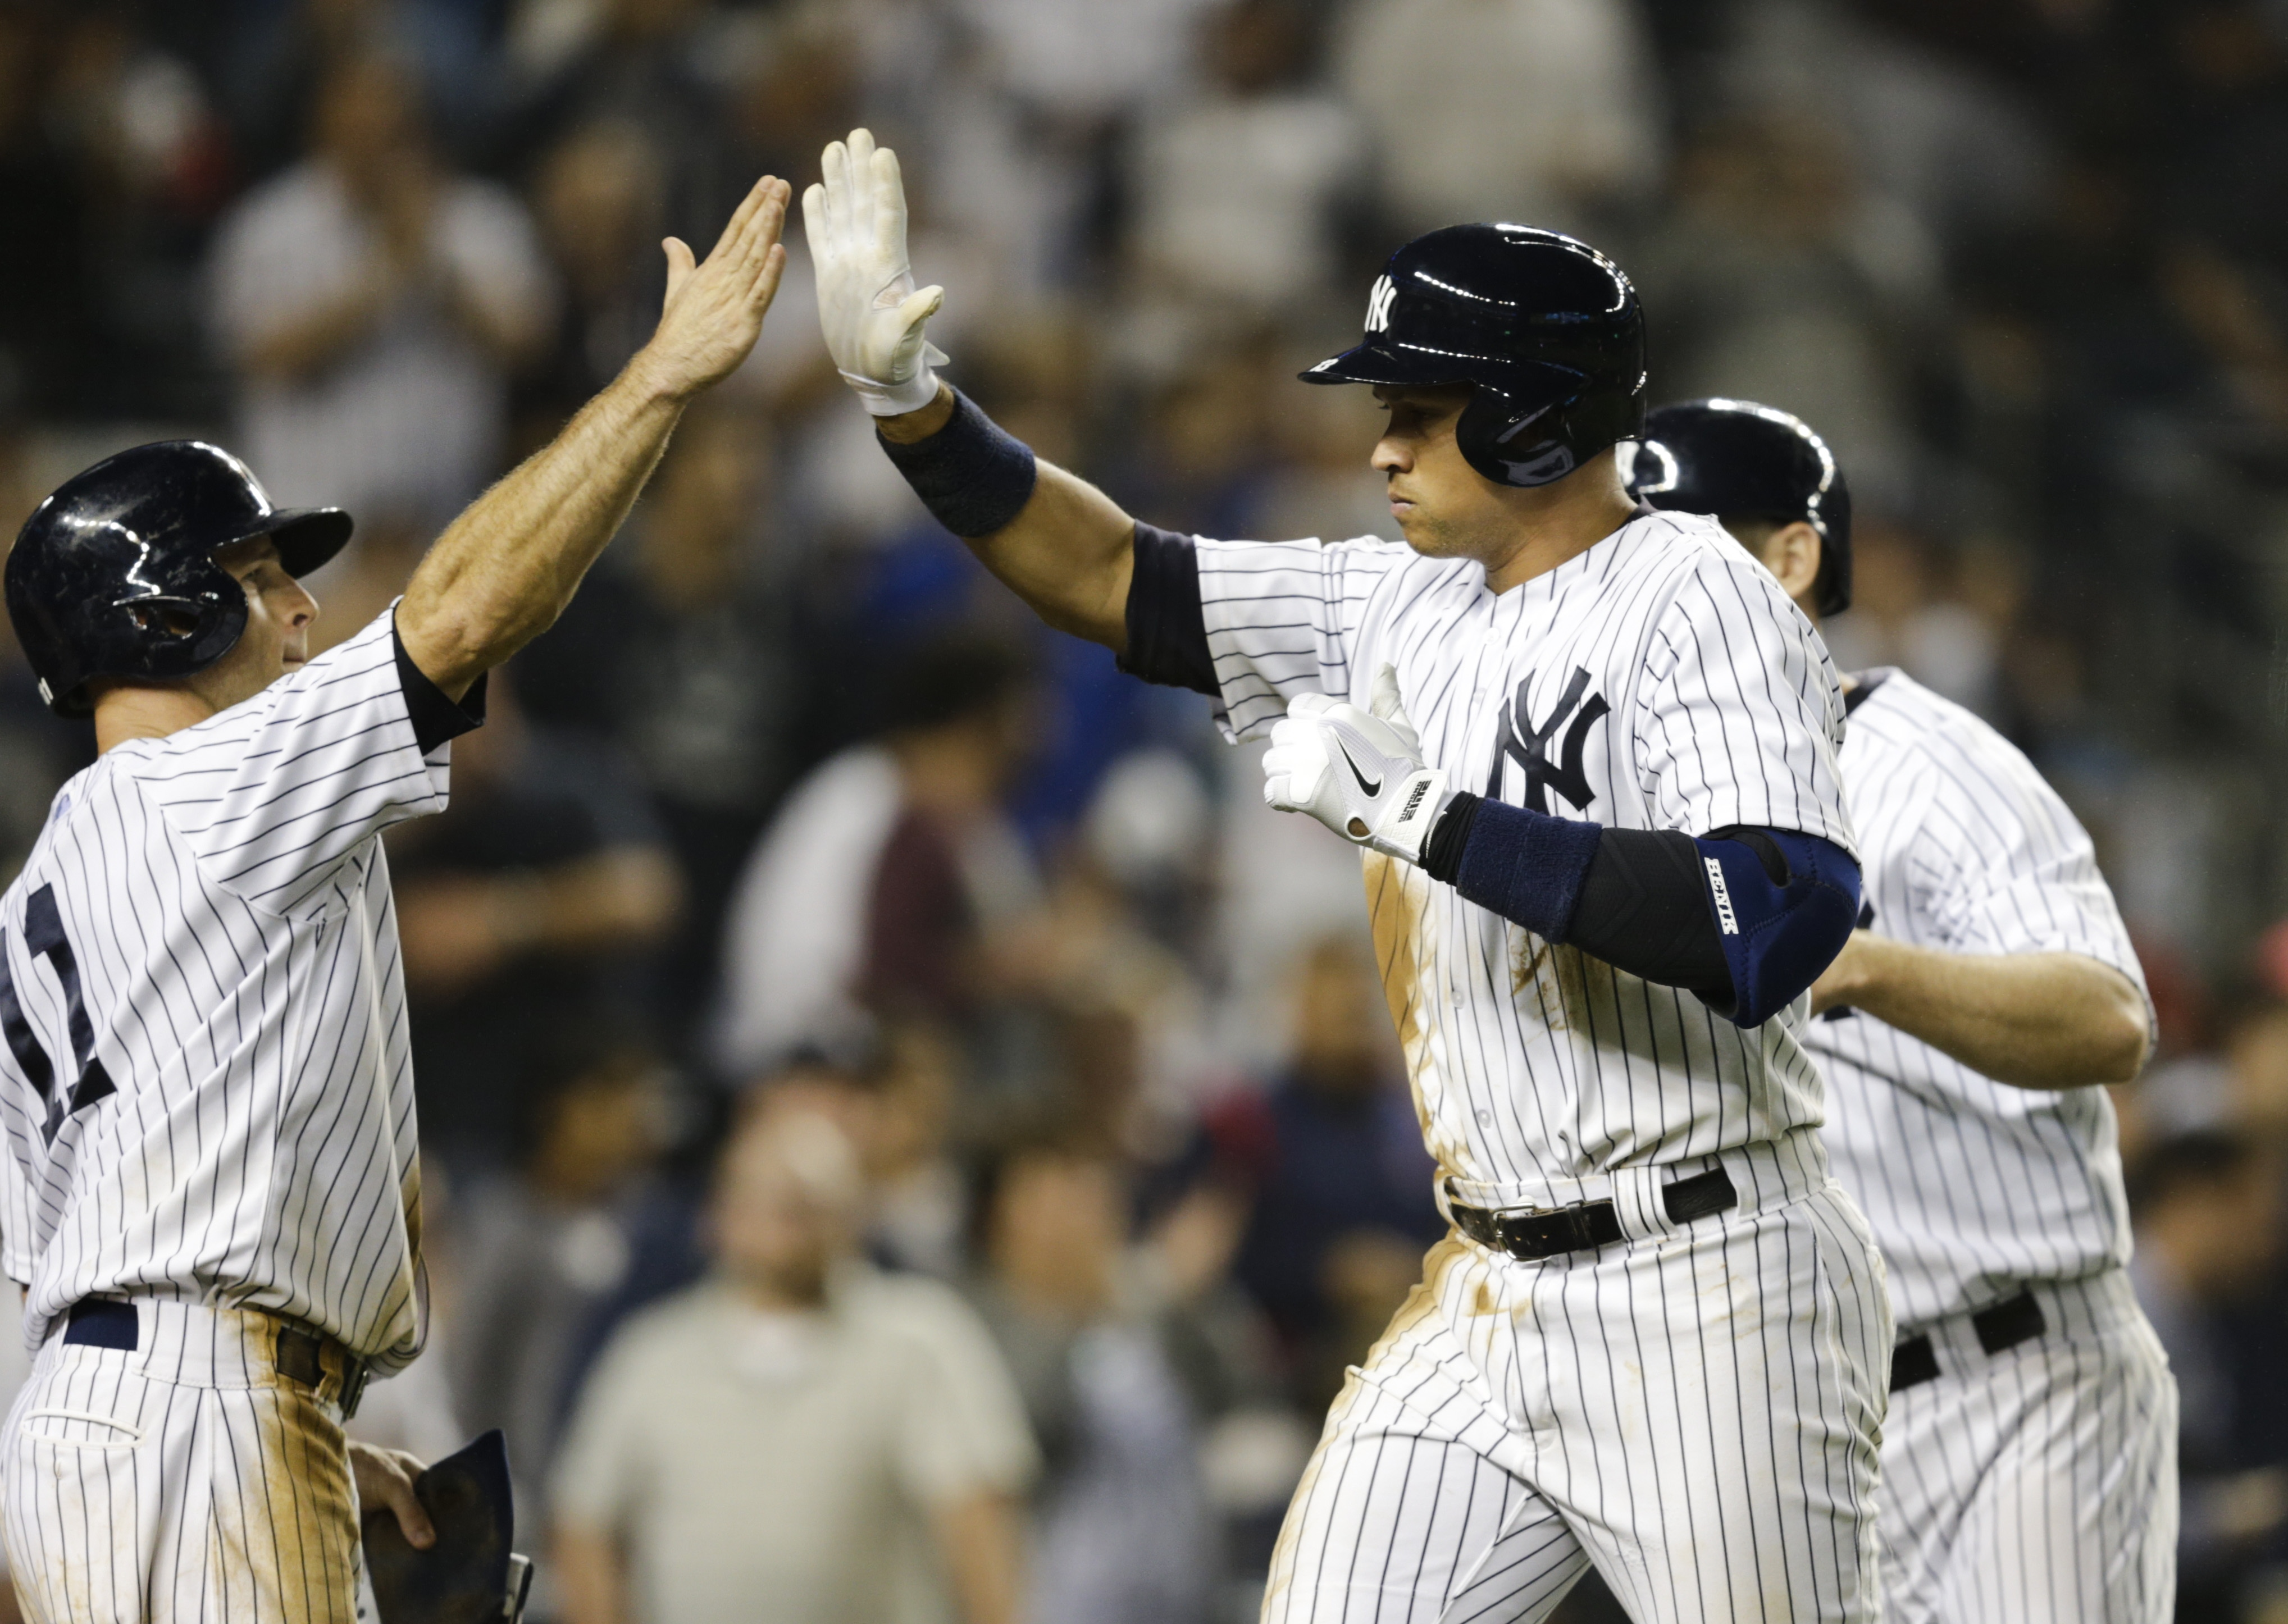 New York Yankees' Alex Rodriguez (13) celebrates with Brett Gardner (11) after Rodriguez hit a three run home run during the third inning of a baseball game against the Detroit Tigers Saturday, June 20, 2015, at Yankee Stadium in New York. (AP Photo/Frank